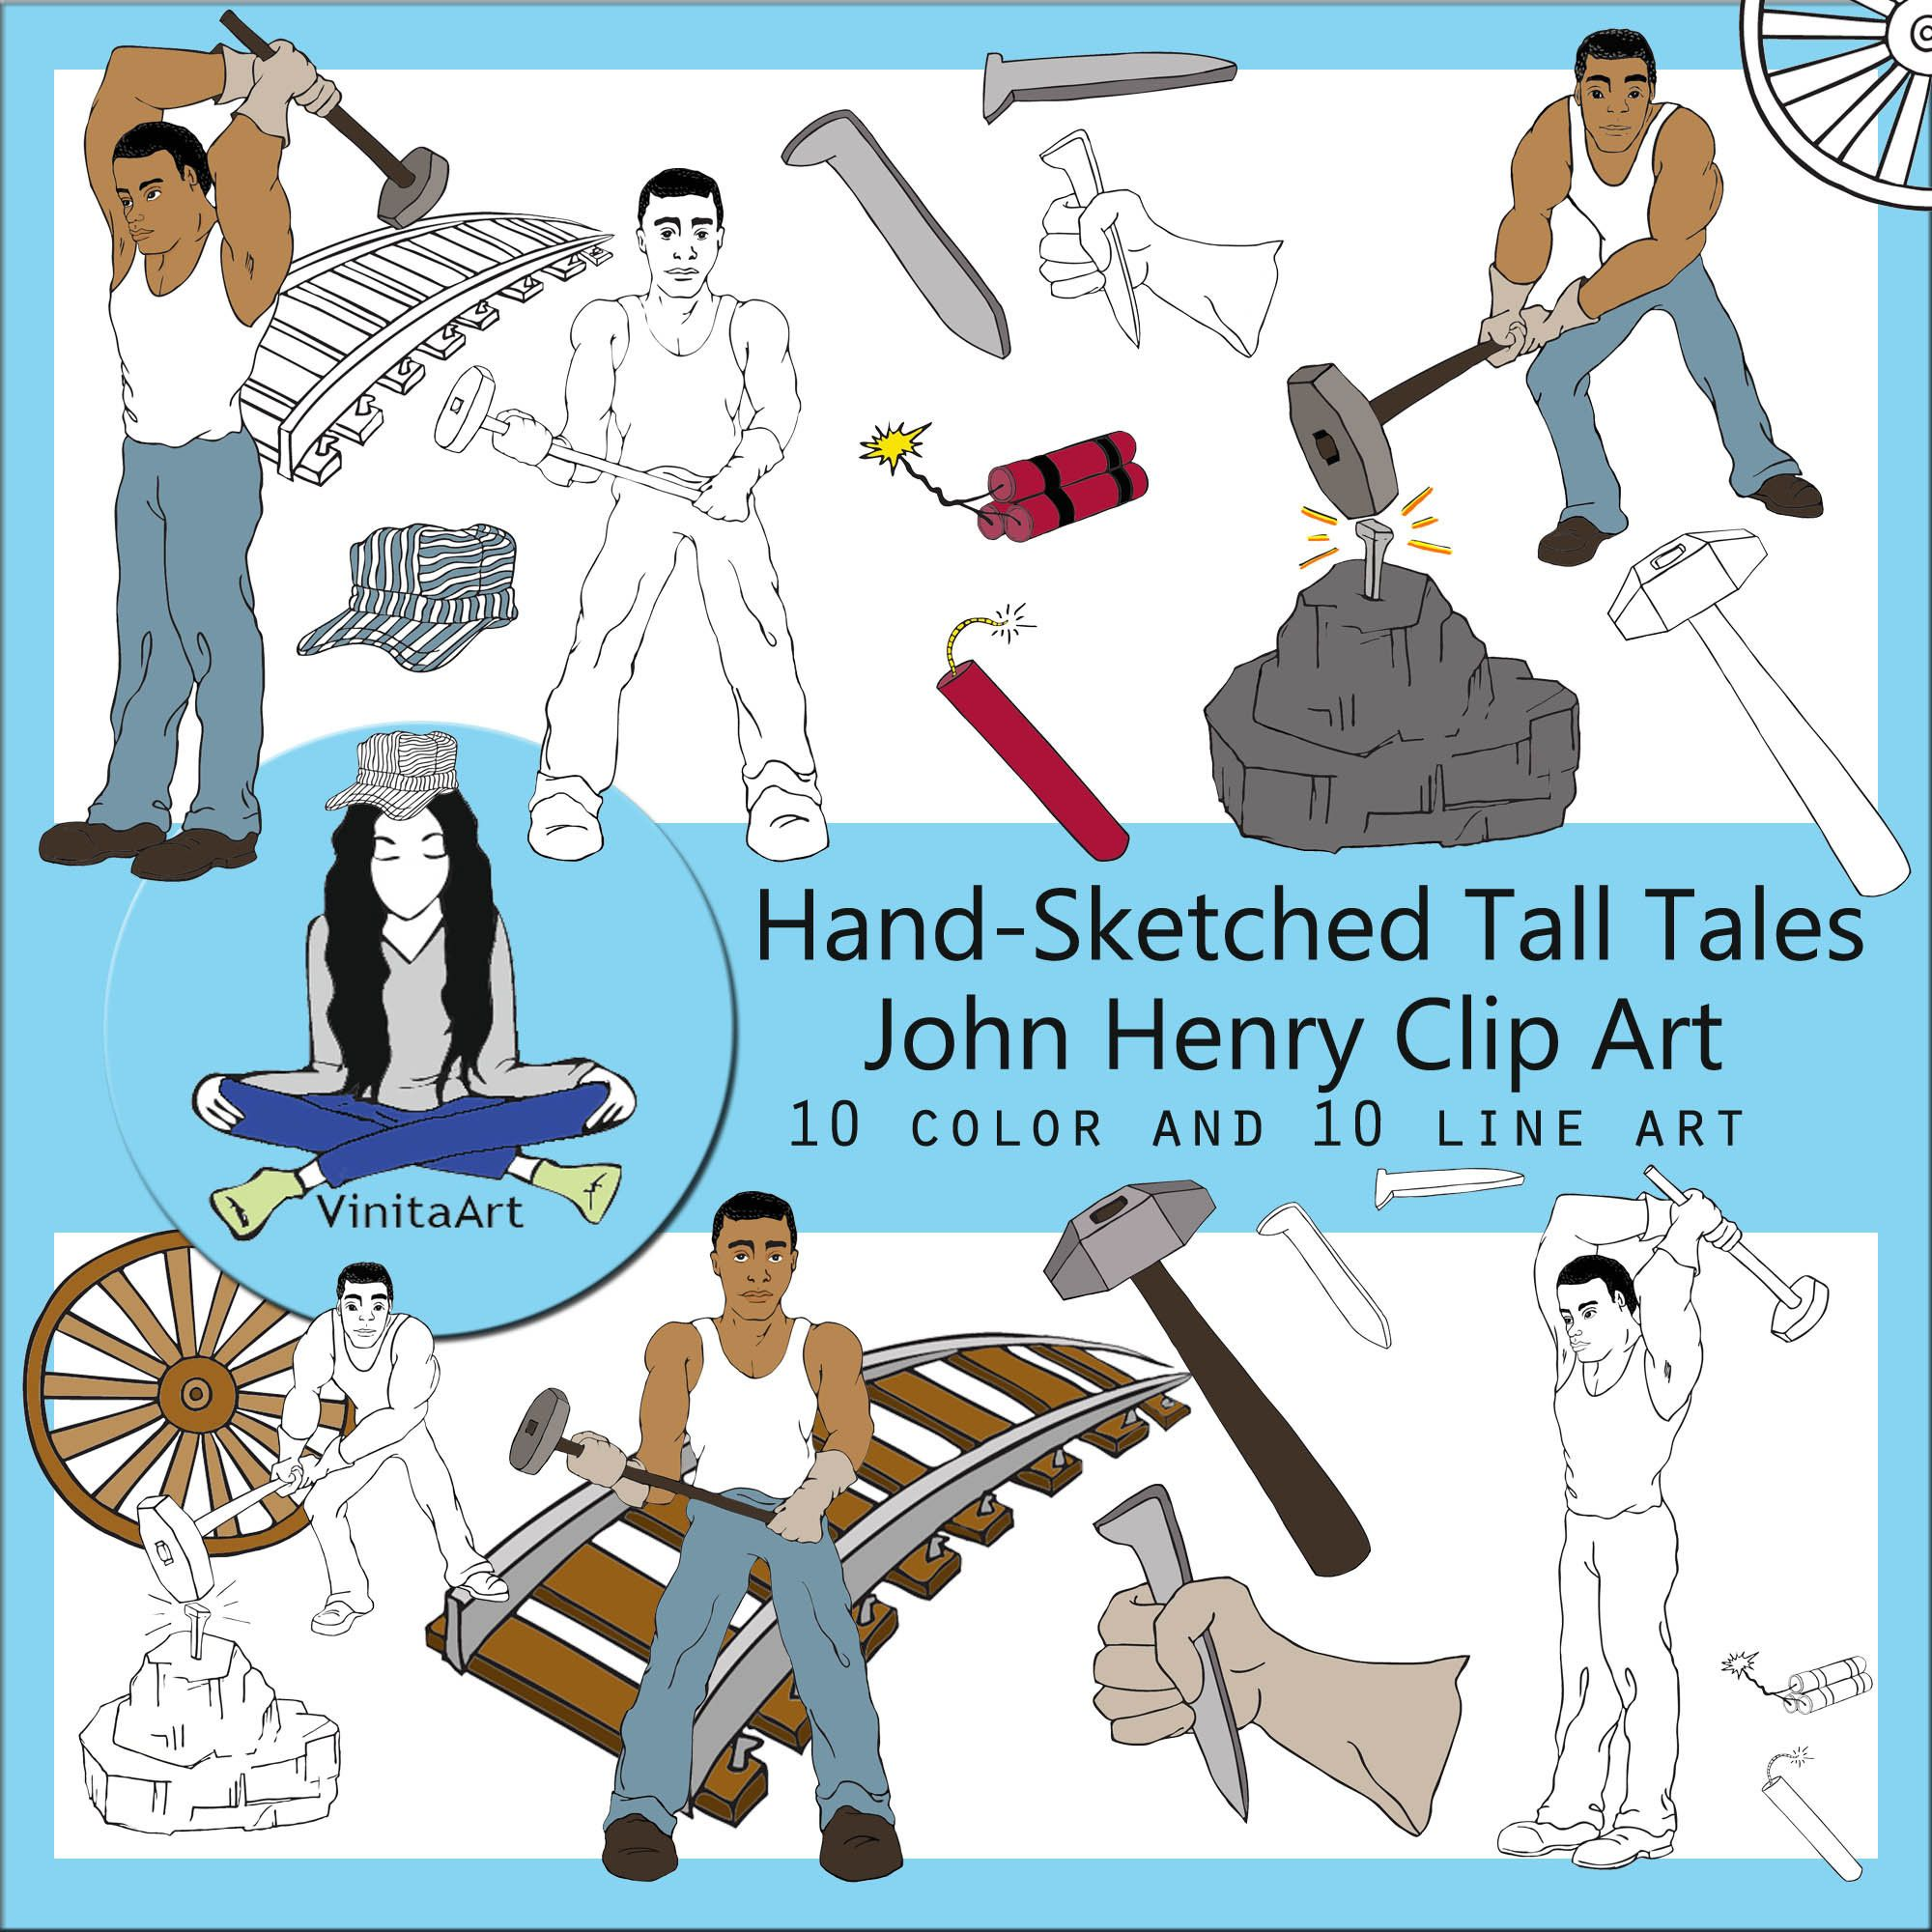 John Henry Clip Art Downloadable Tall Tales Home School